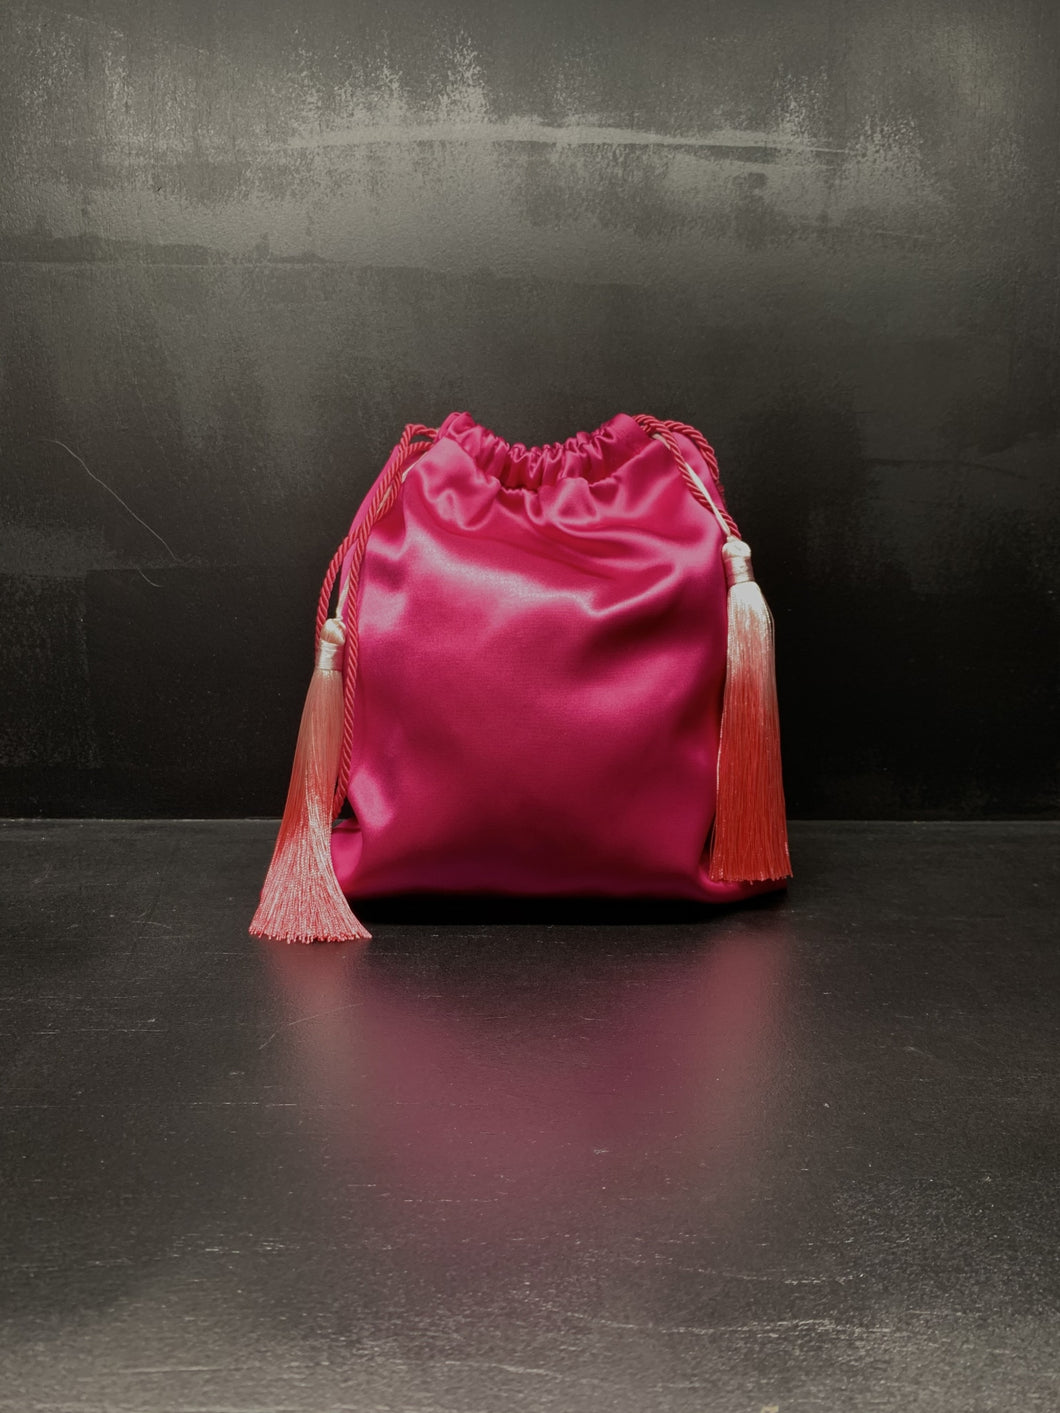 Mini bag sacchetto in raso fucsia